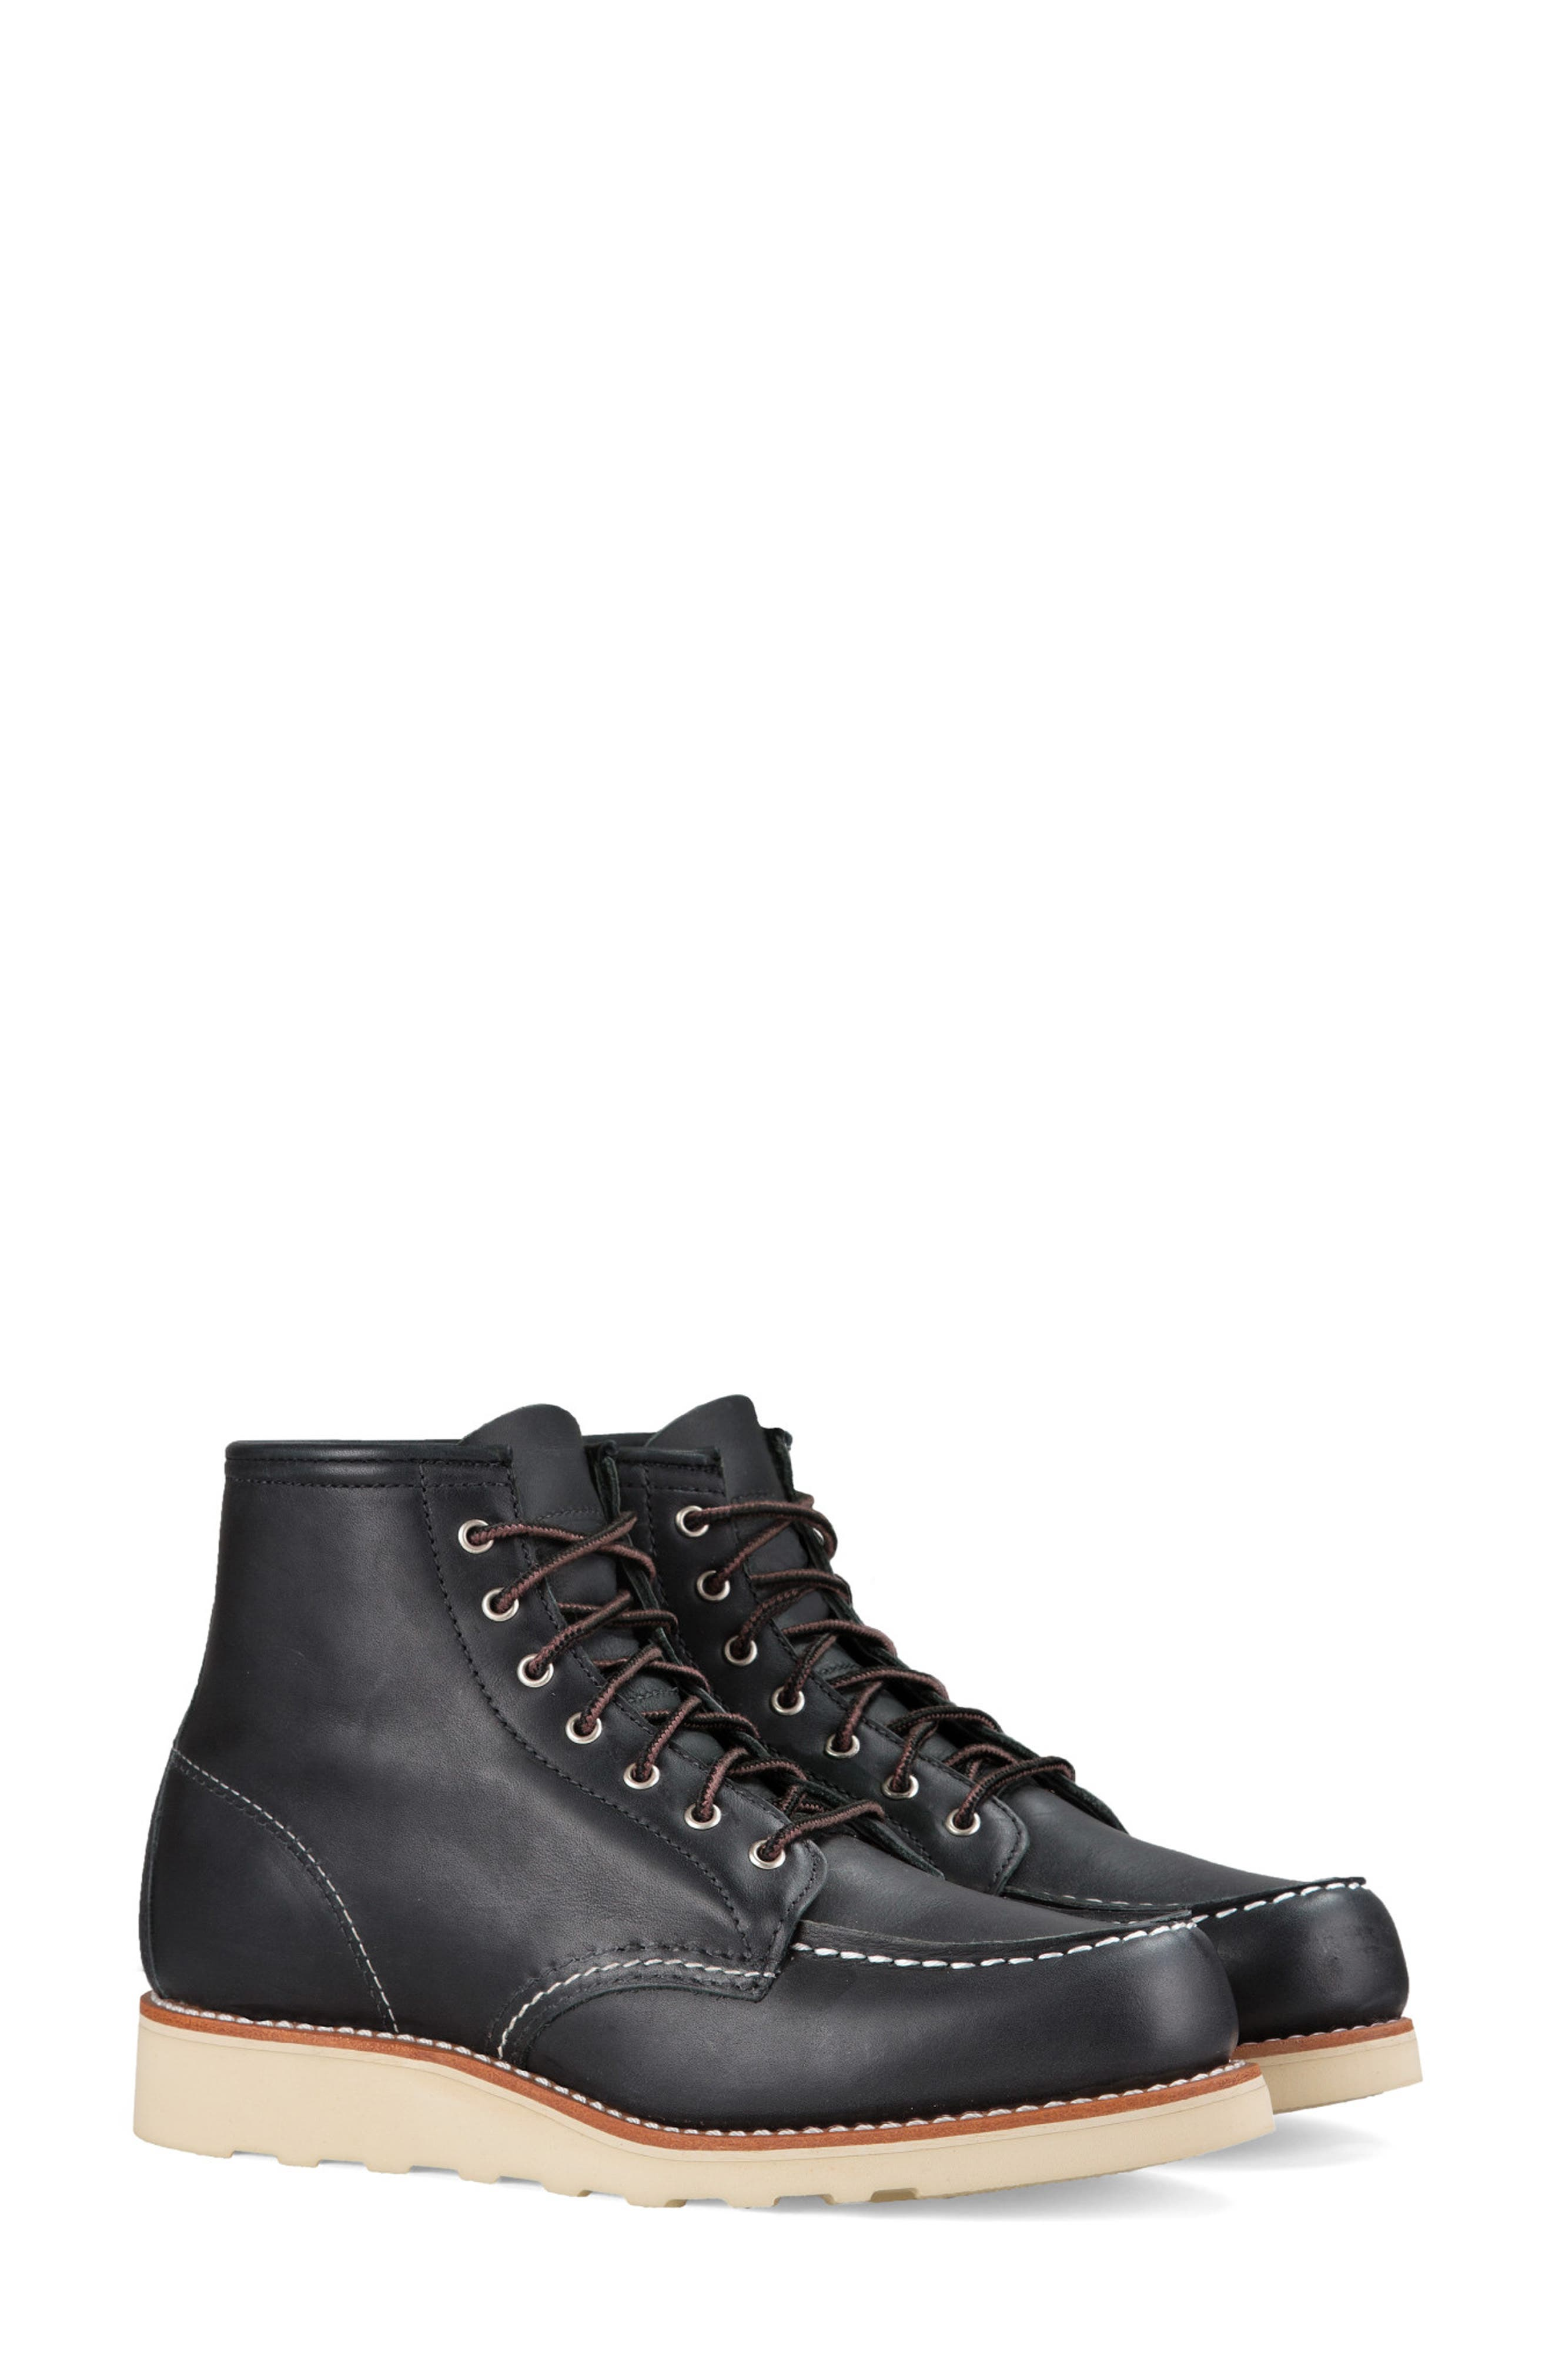 RED WING 6-Inch Moc Boot, Main, color, BLACK BOUNDARY LEATHER